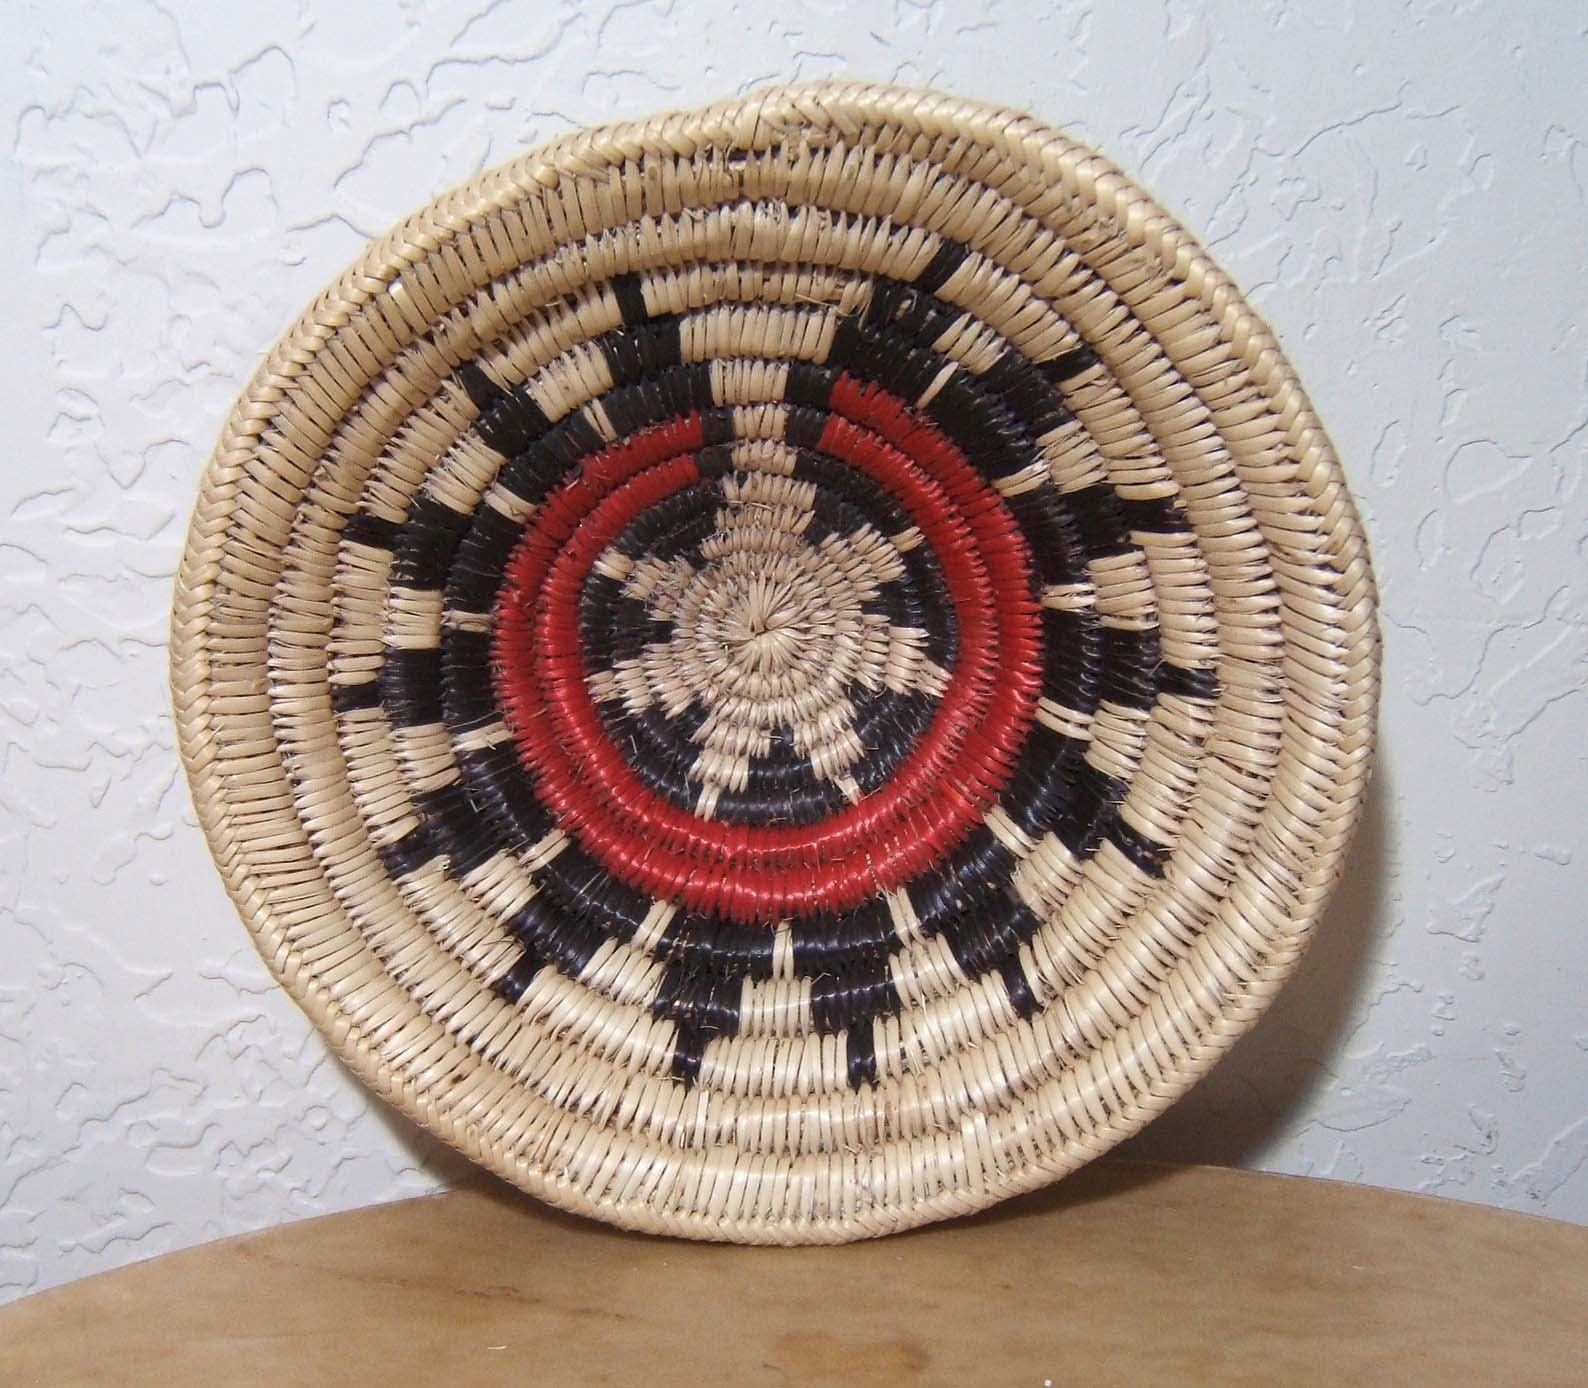 Traditional Native American Basket Weaving : Native american indian baskets navajo hopi